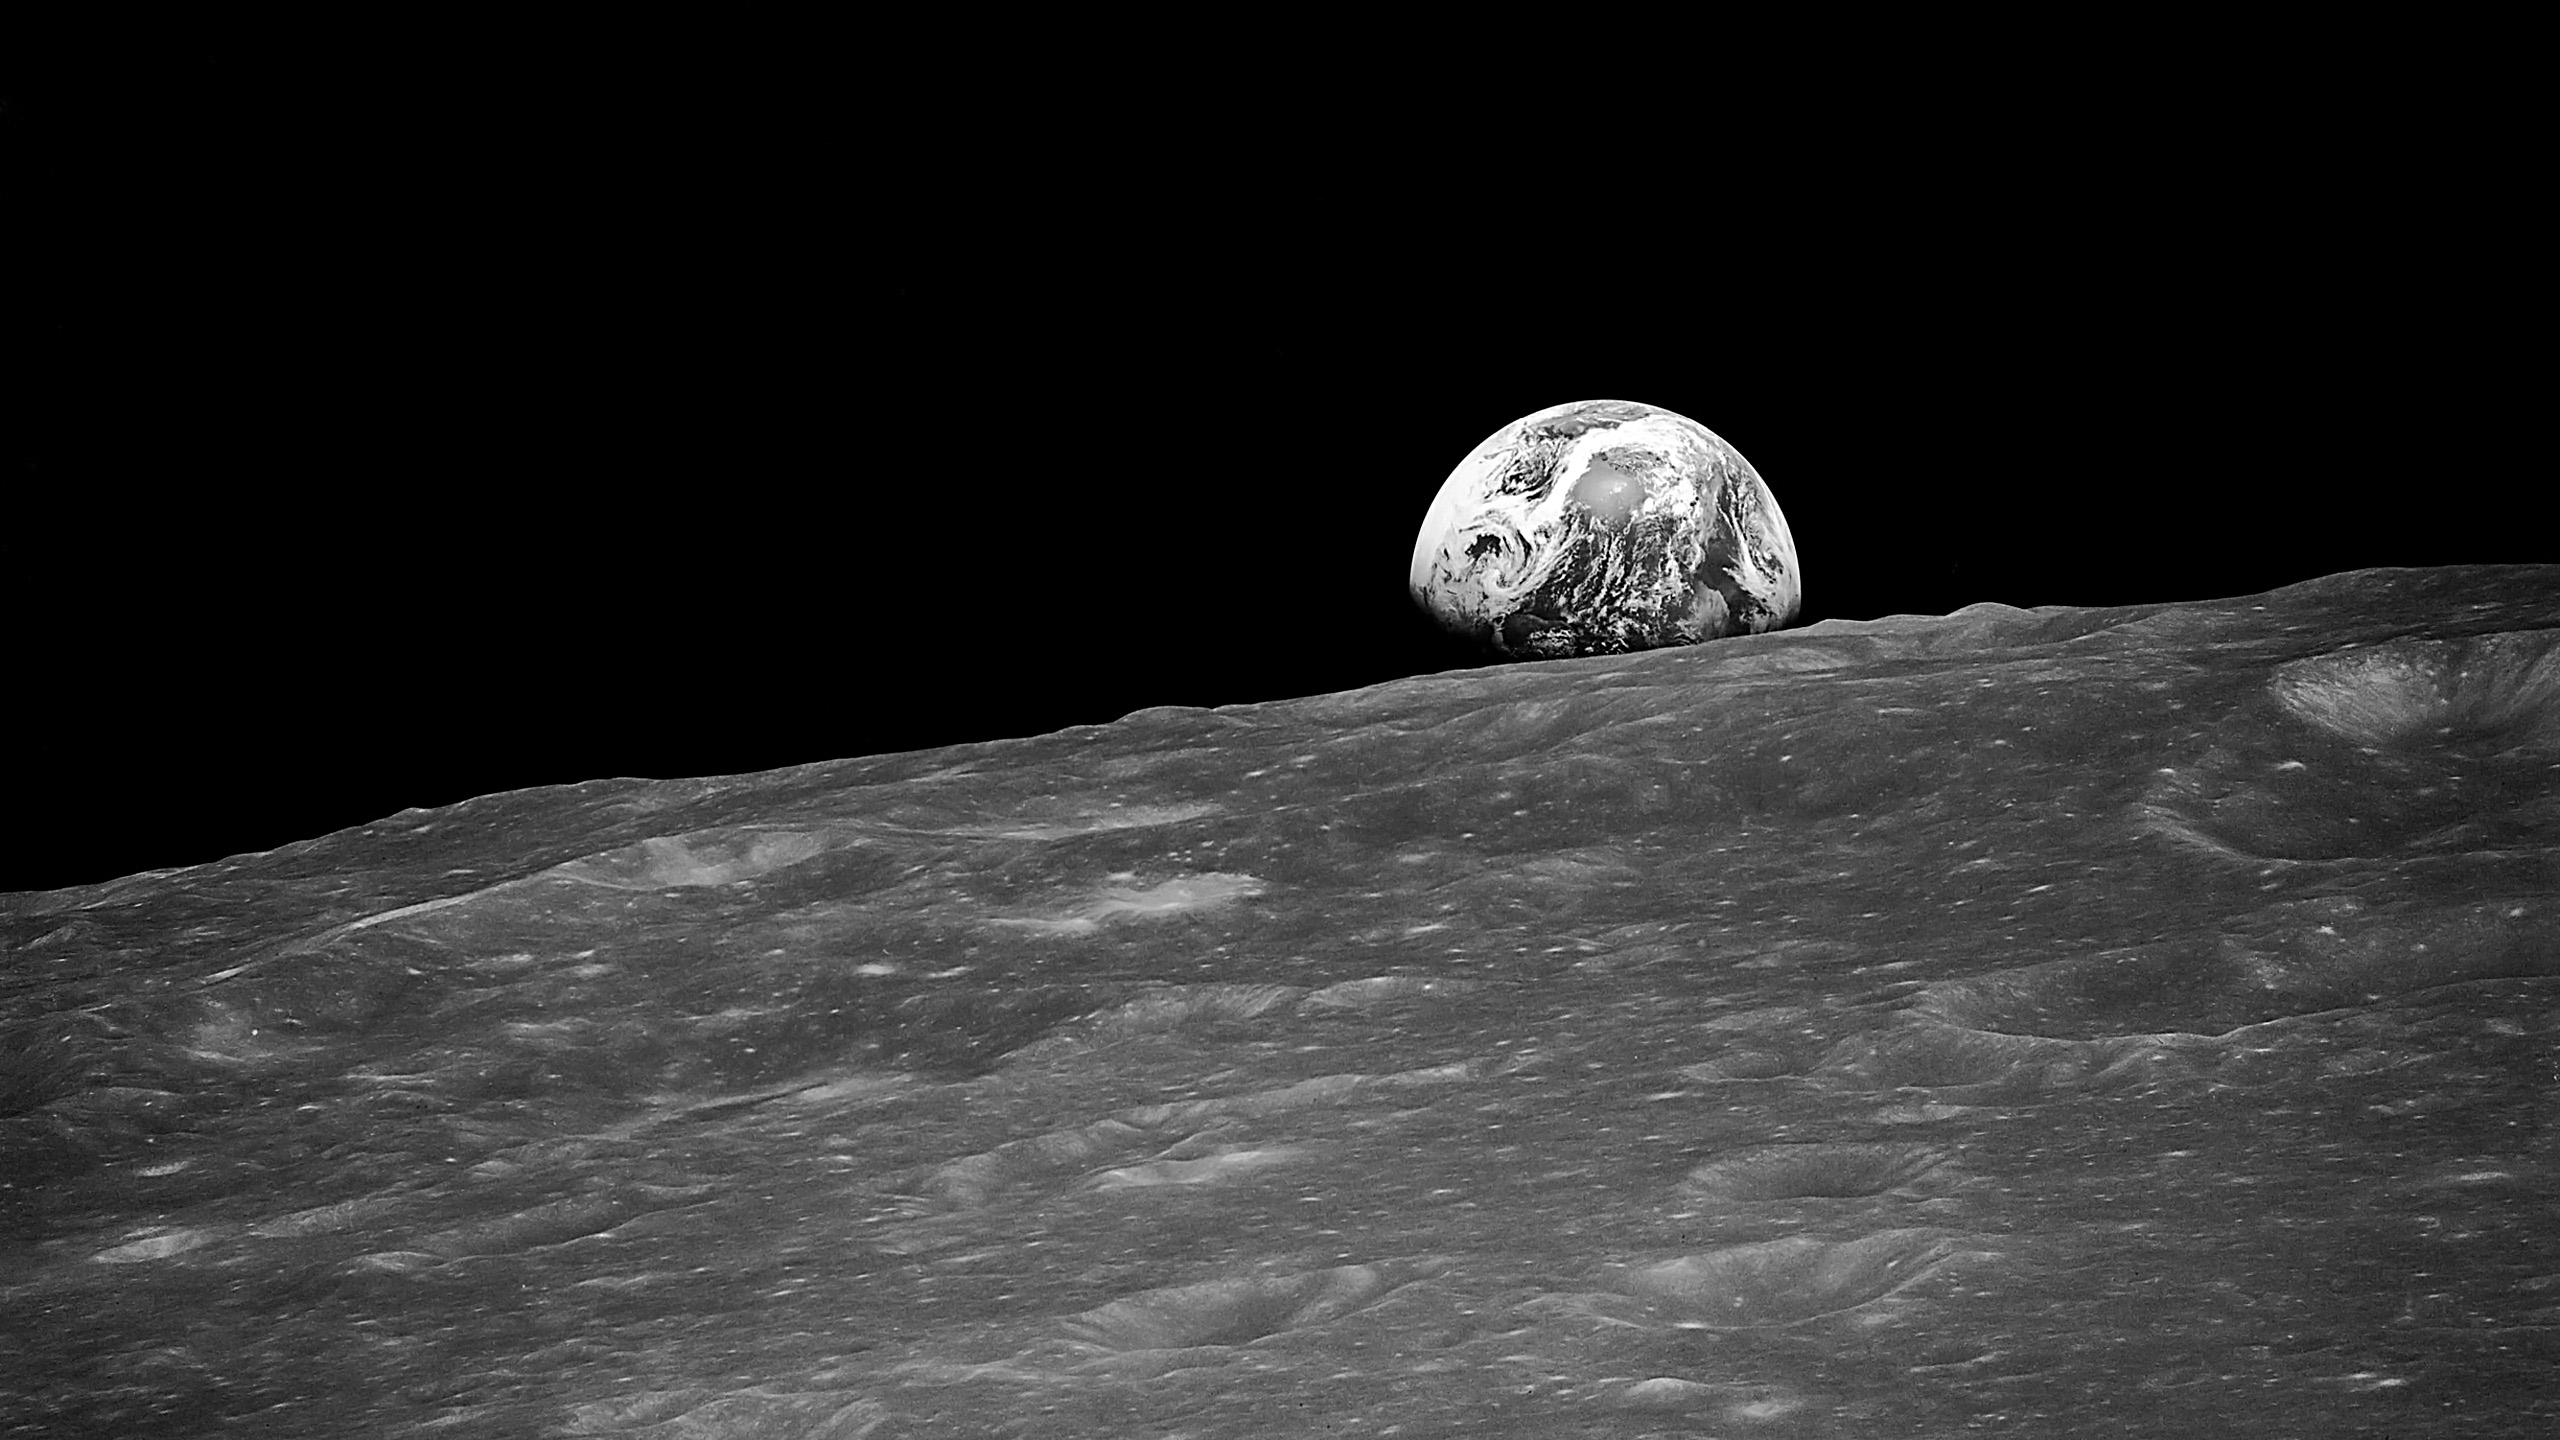 earthrise from moon apollo - photo #16